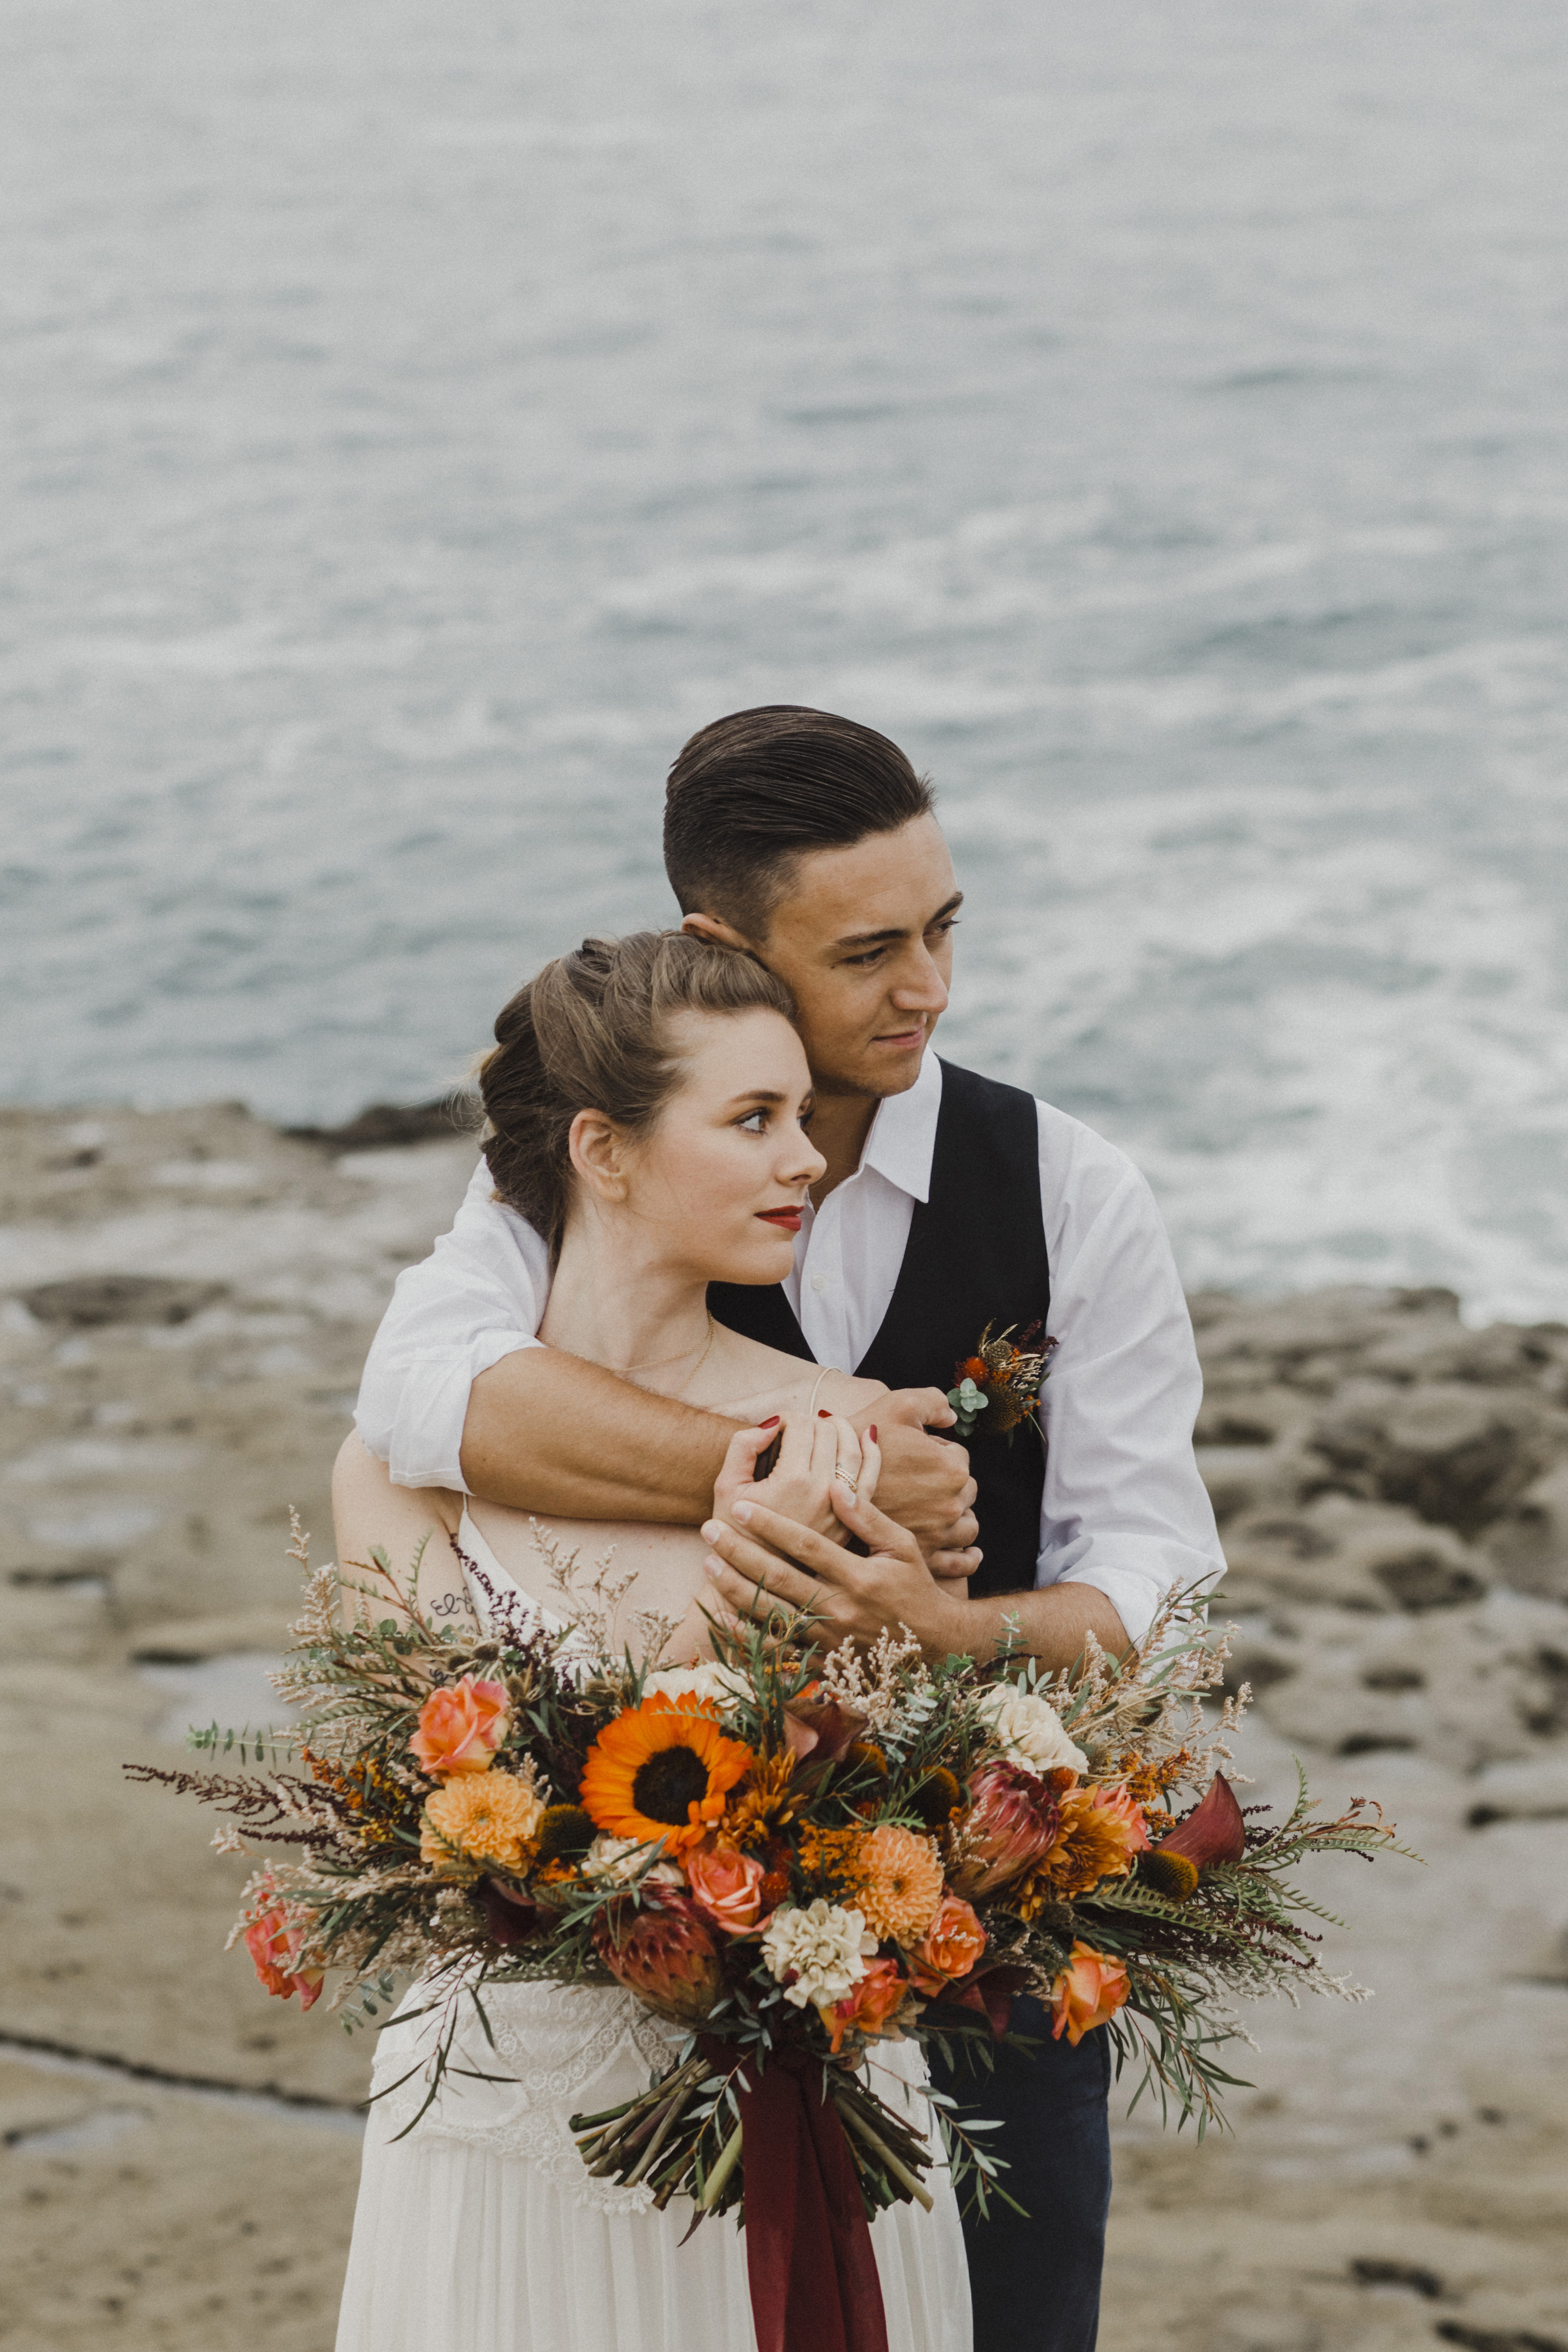 Moody wedding flowers at the beach.